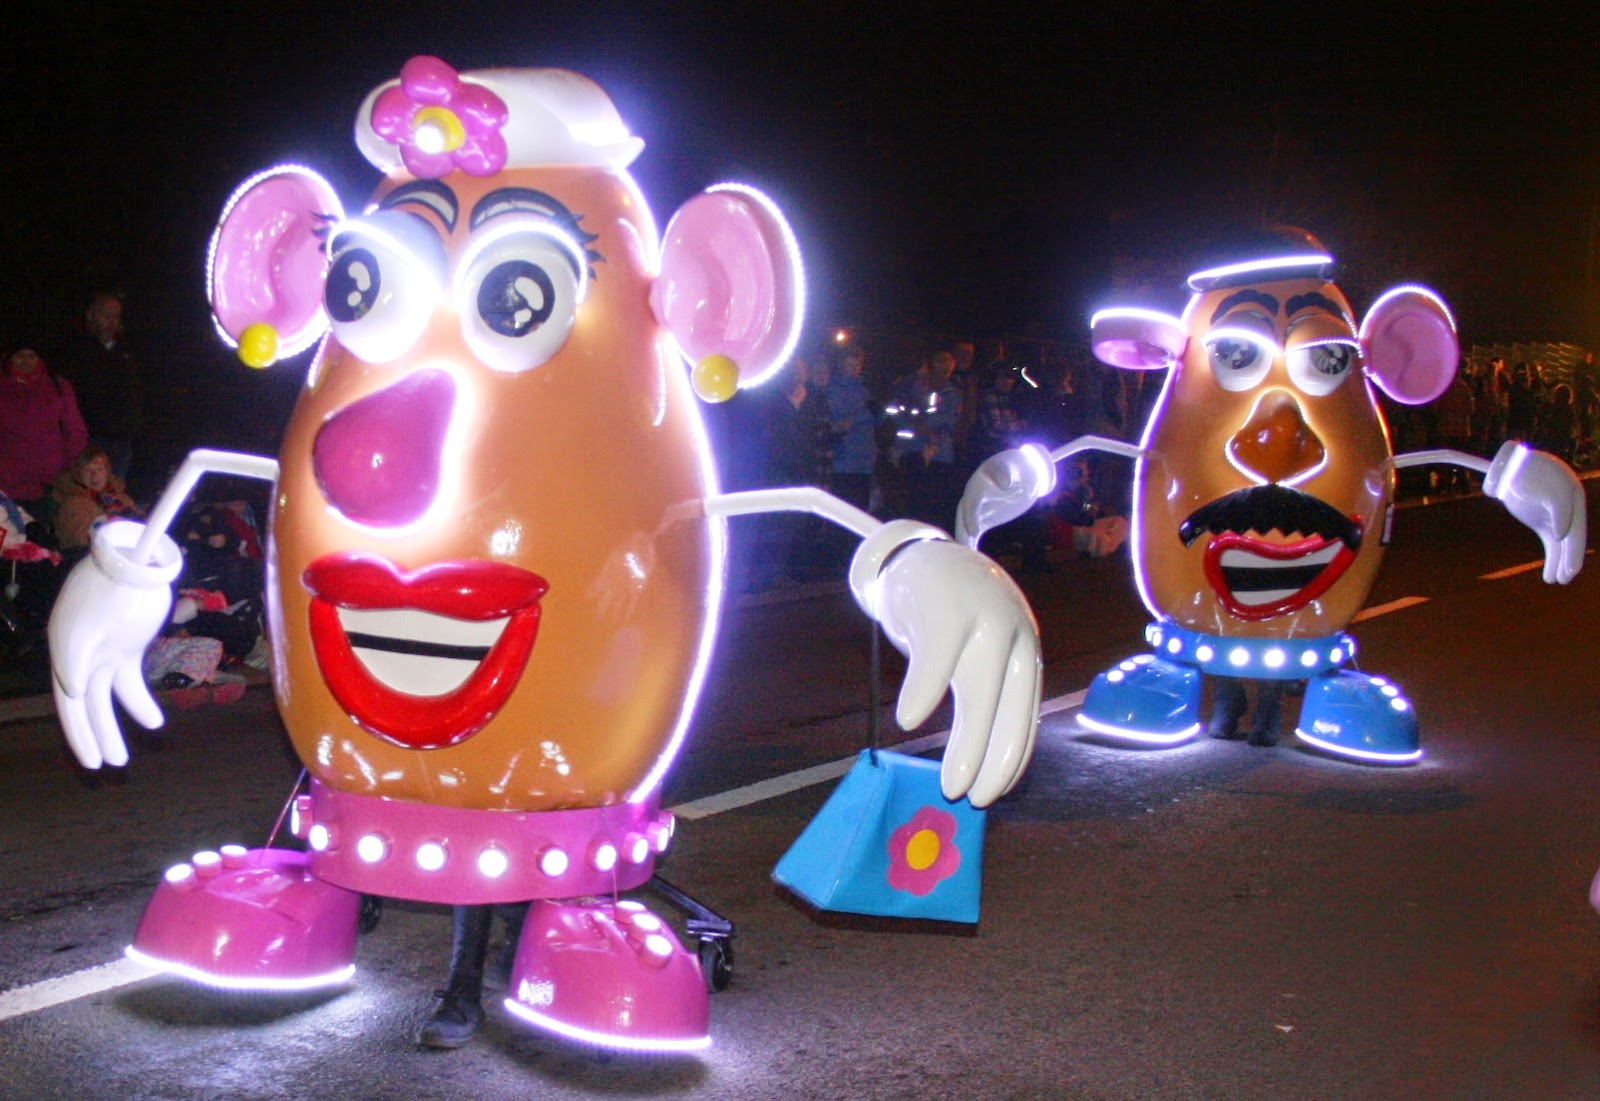 Somerset Carnival Season 2014 - A & A Carnival Club with 'Mr and Mrs Potato Head'